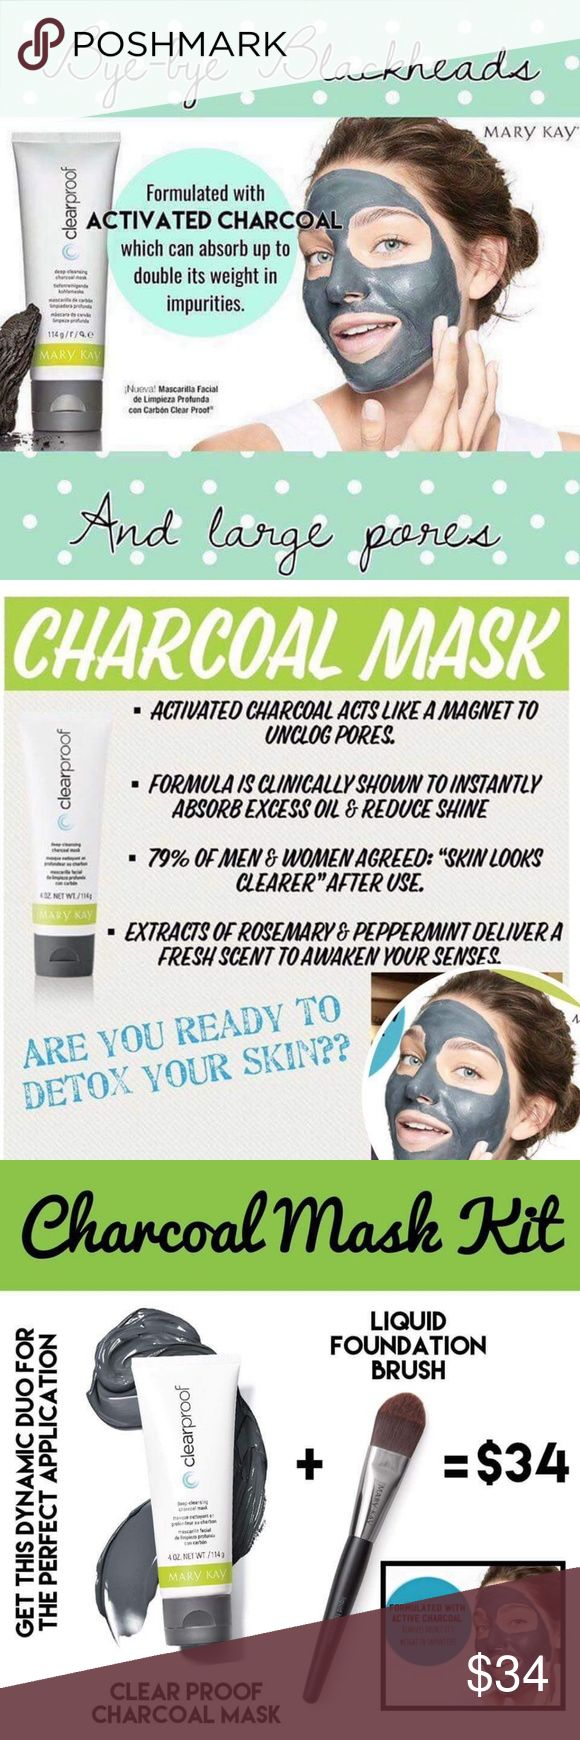 New MK Charcoal Mask--the hottest skincare! Order yours today! Mary Kay has nailed it ?? with infusions of honeysuckle ?? and navy bean extract! NO painful peel off (because you should love your face enough). Just a smooth wash off, and it smells amazing! It's gross and cool what you see come out of your skin! Mary Kay's activated charcoal mask pulls 2X it's weight in impurities out of your skin! One tube lasts for 30 masks at a cost of less than $.80 cents per mask. www.marykay.com/cthomas6